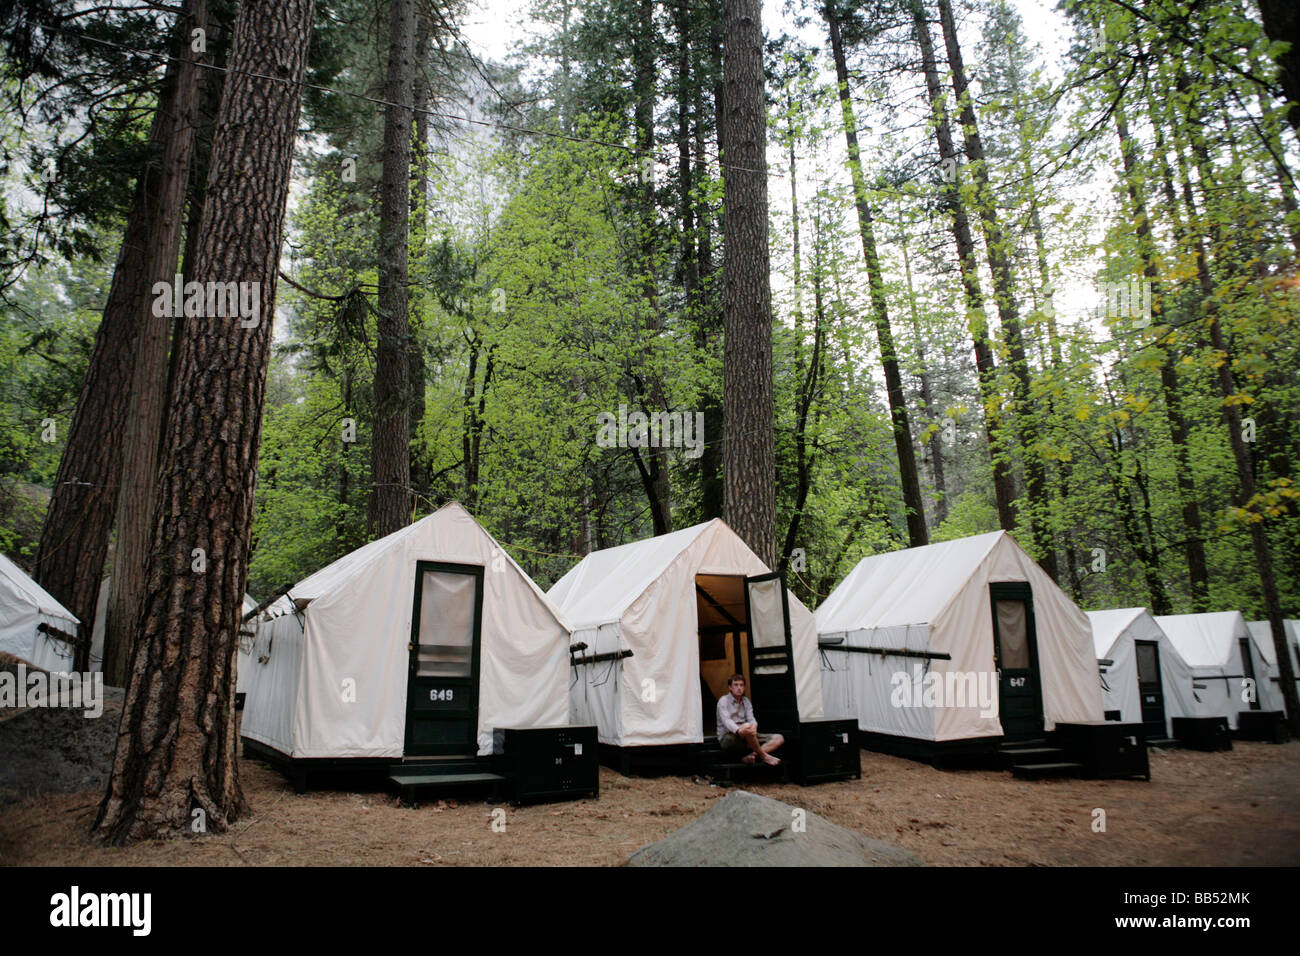 yosemite national park camping stock photos & yosemite national park